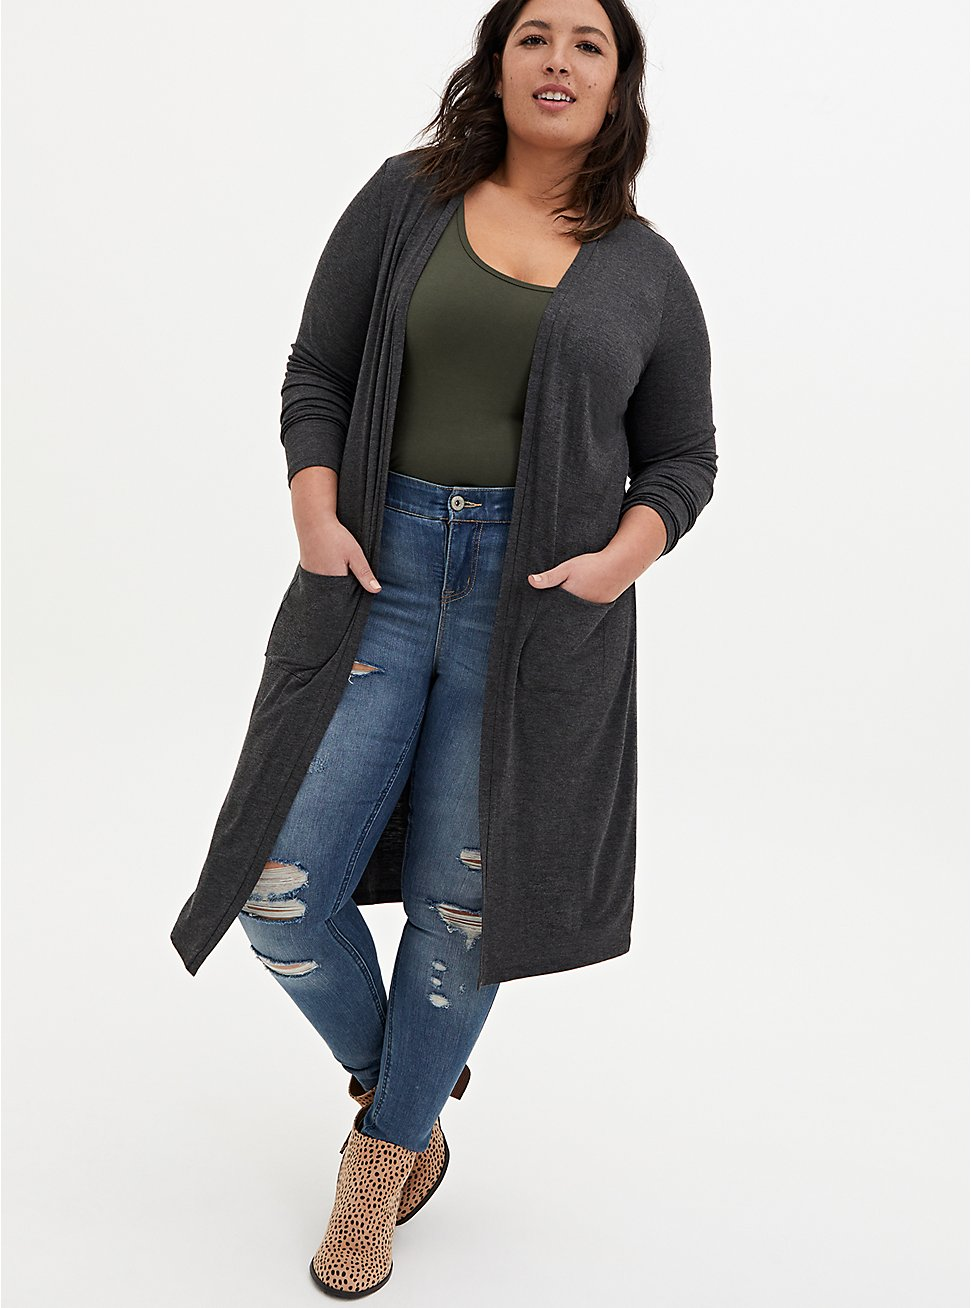 Super Soft Slub Charcoal Grey Open Front Longline Cardigan, CHARCOAL  GREY, hi-res